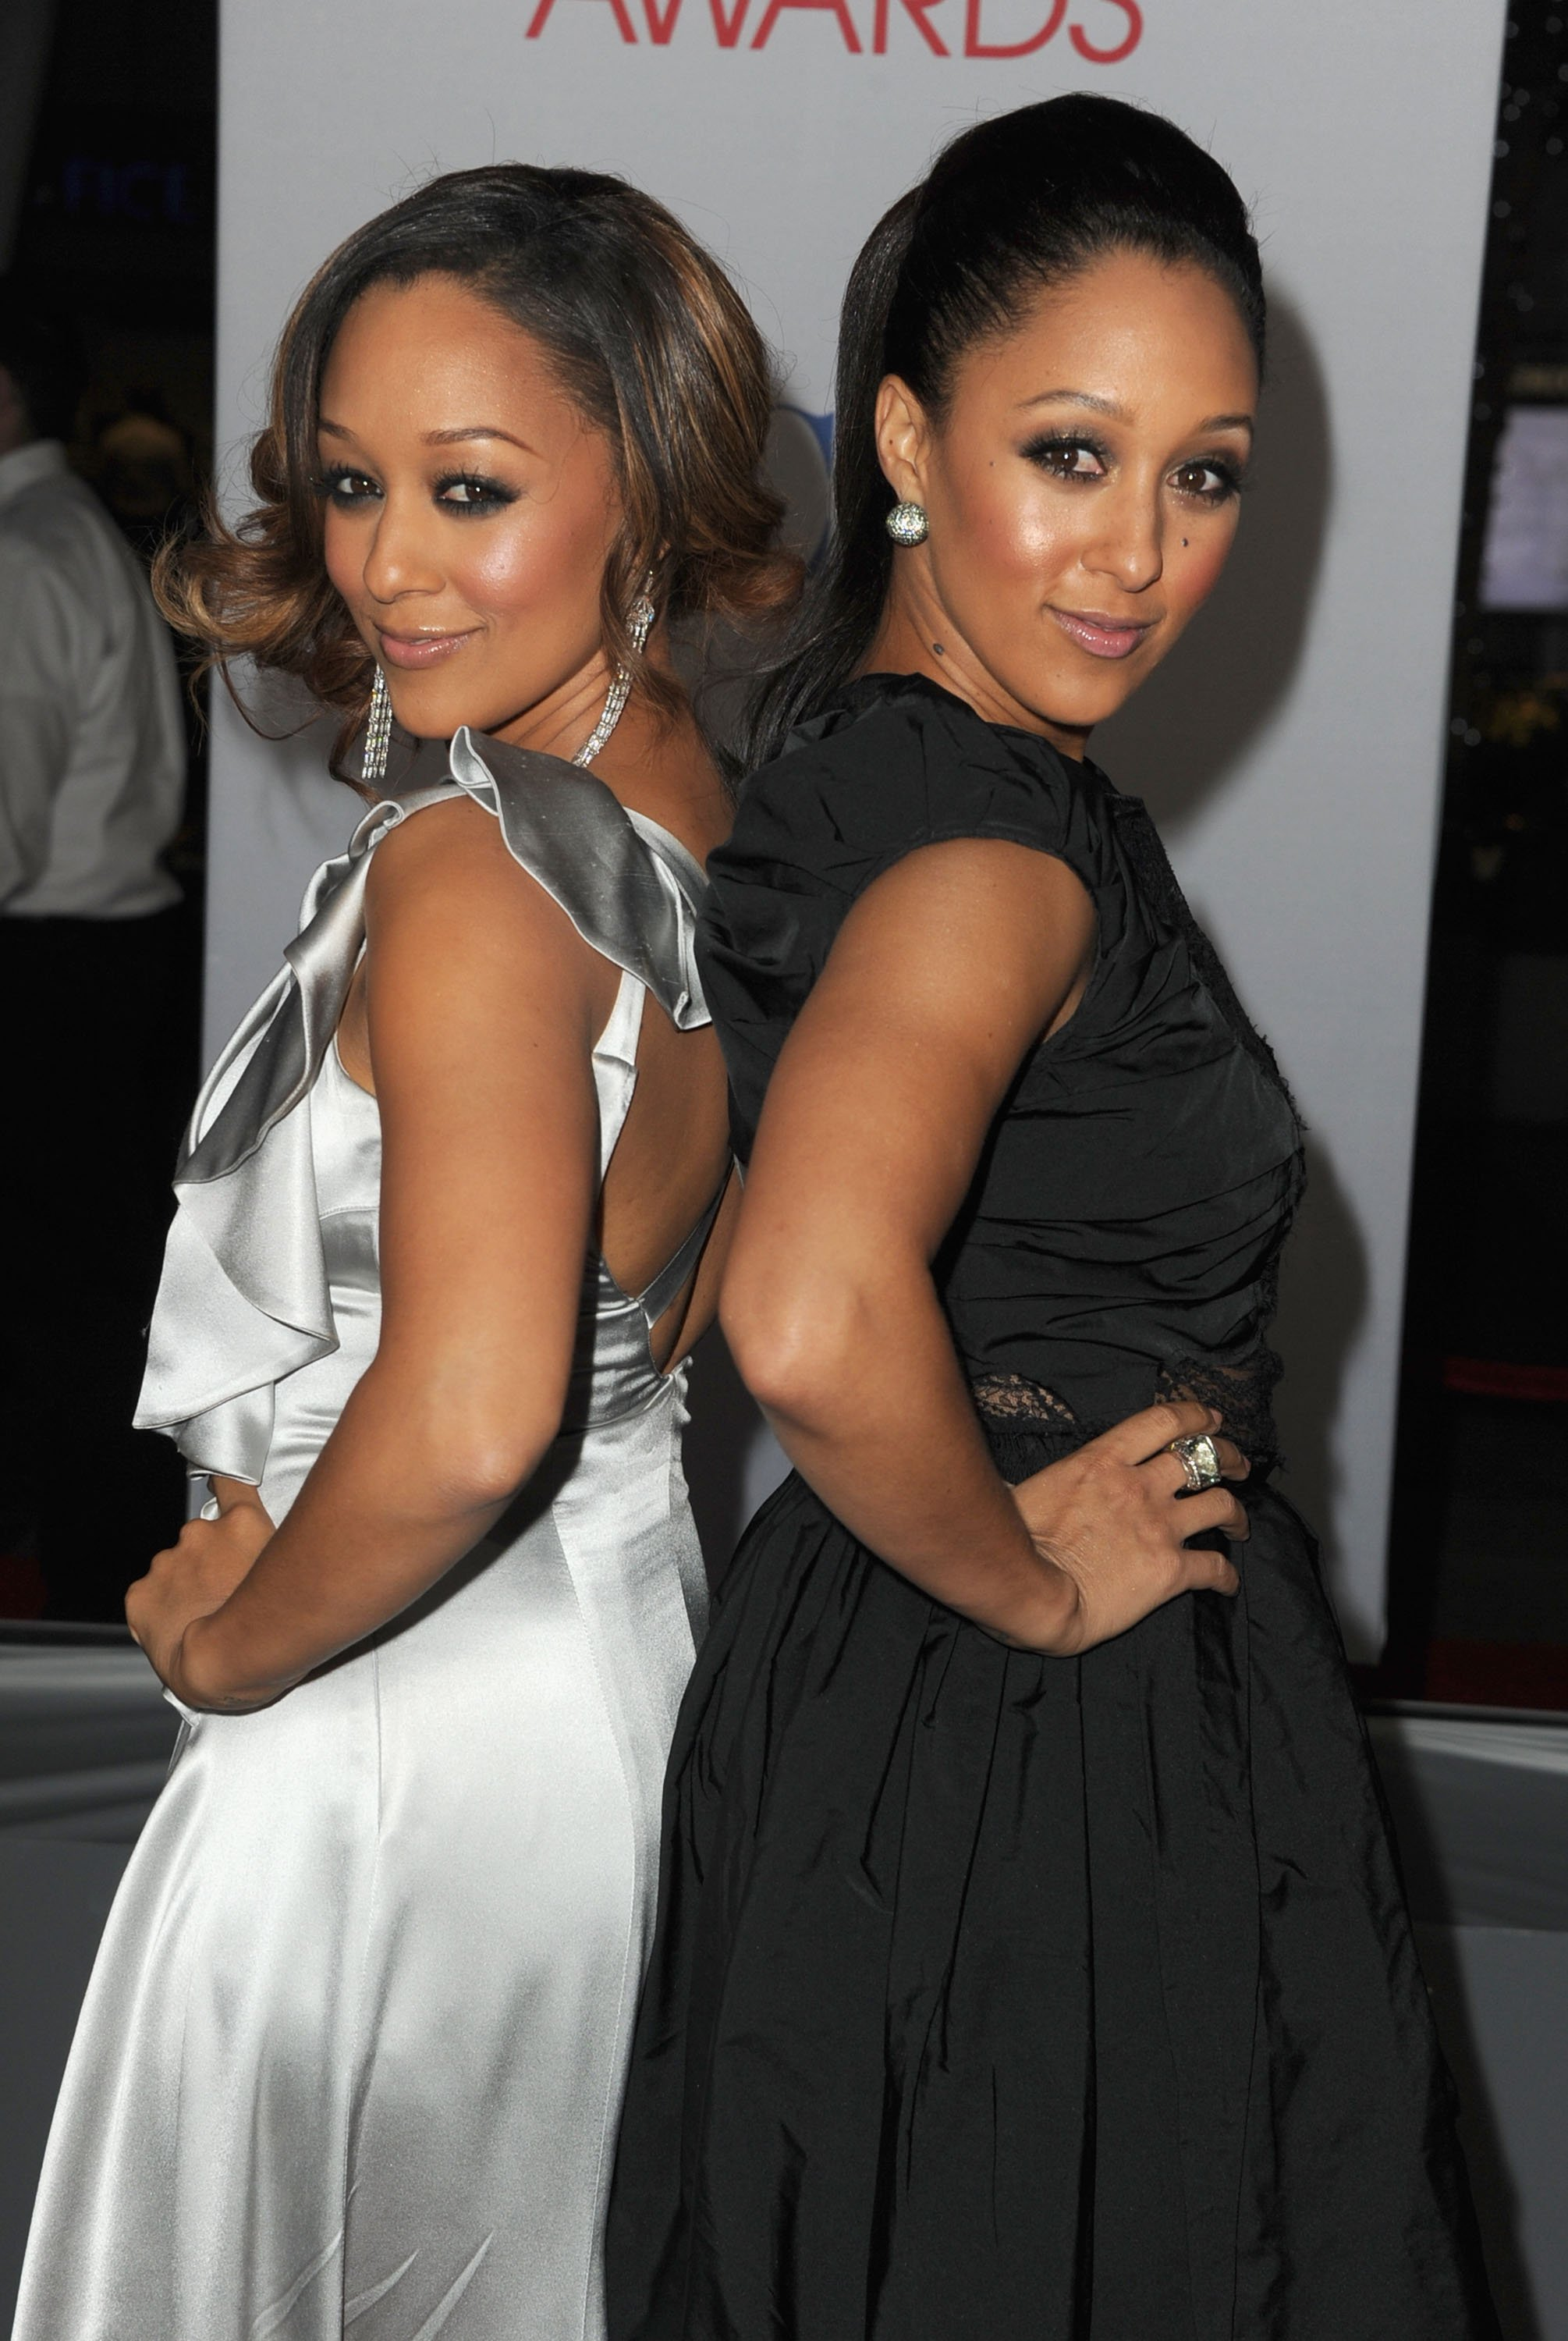 Tia Mowry and Tamara Mowry arrive at the People's Choice Awards 2012 on January 11, 2012. | Source: Getty Images